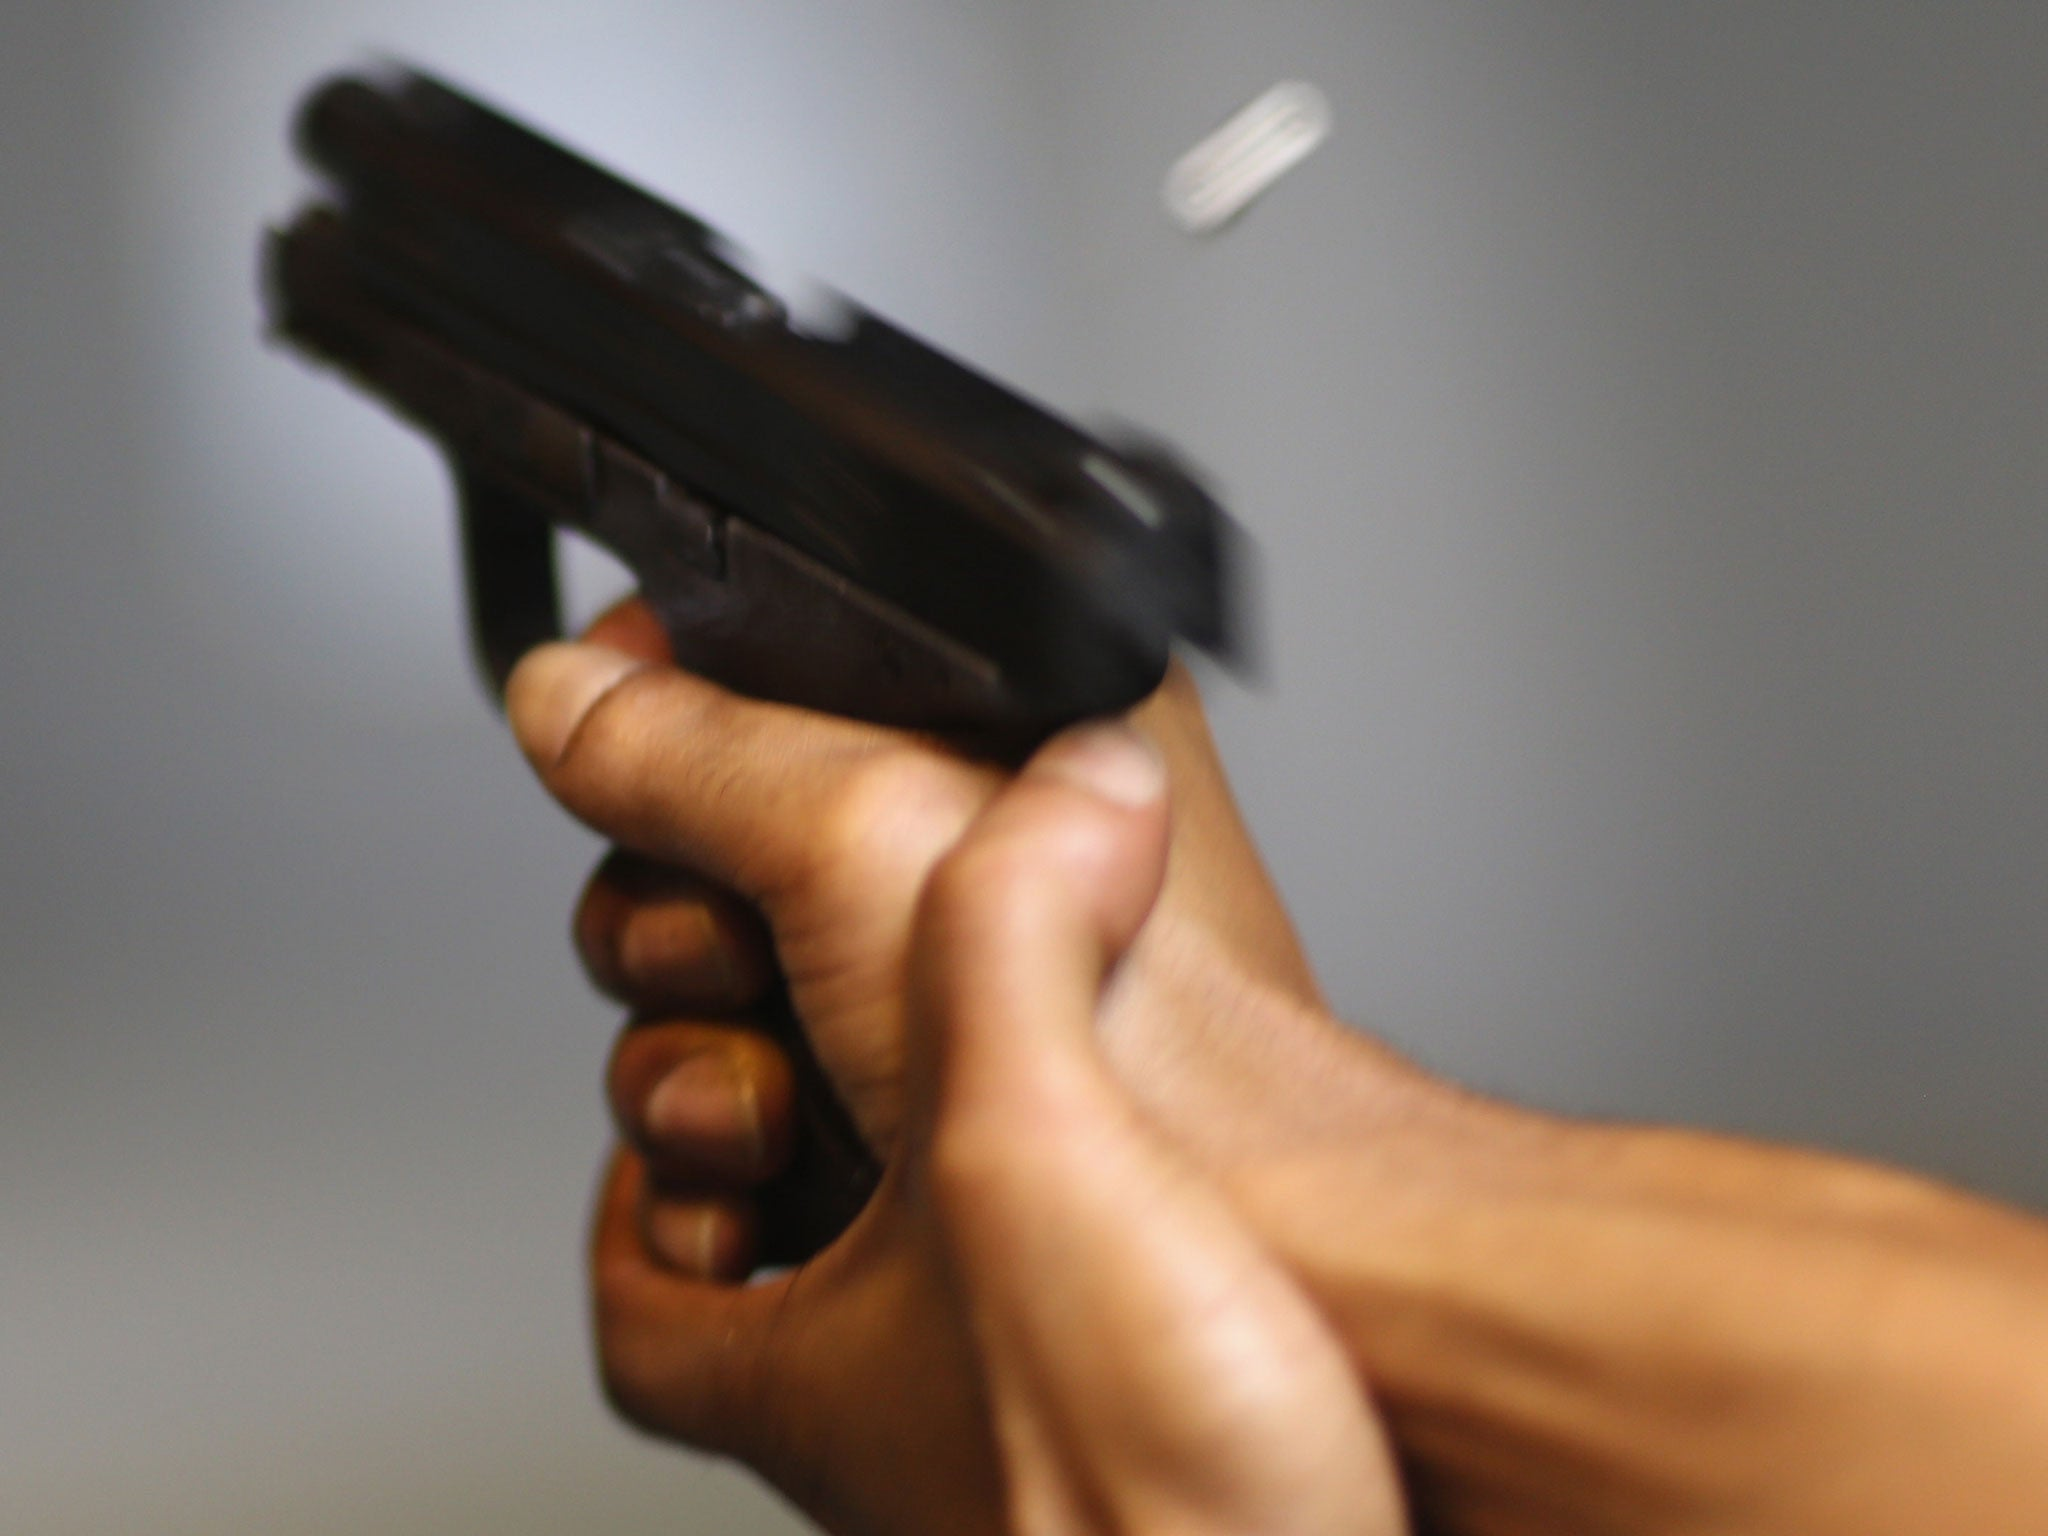 Man shoots himself in the head and dies while demonstrating gun safety